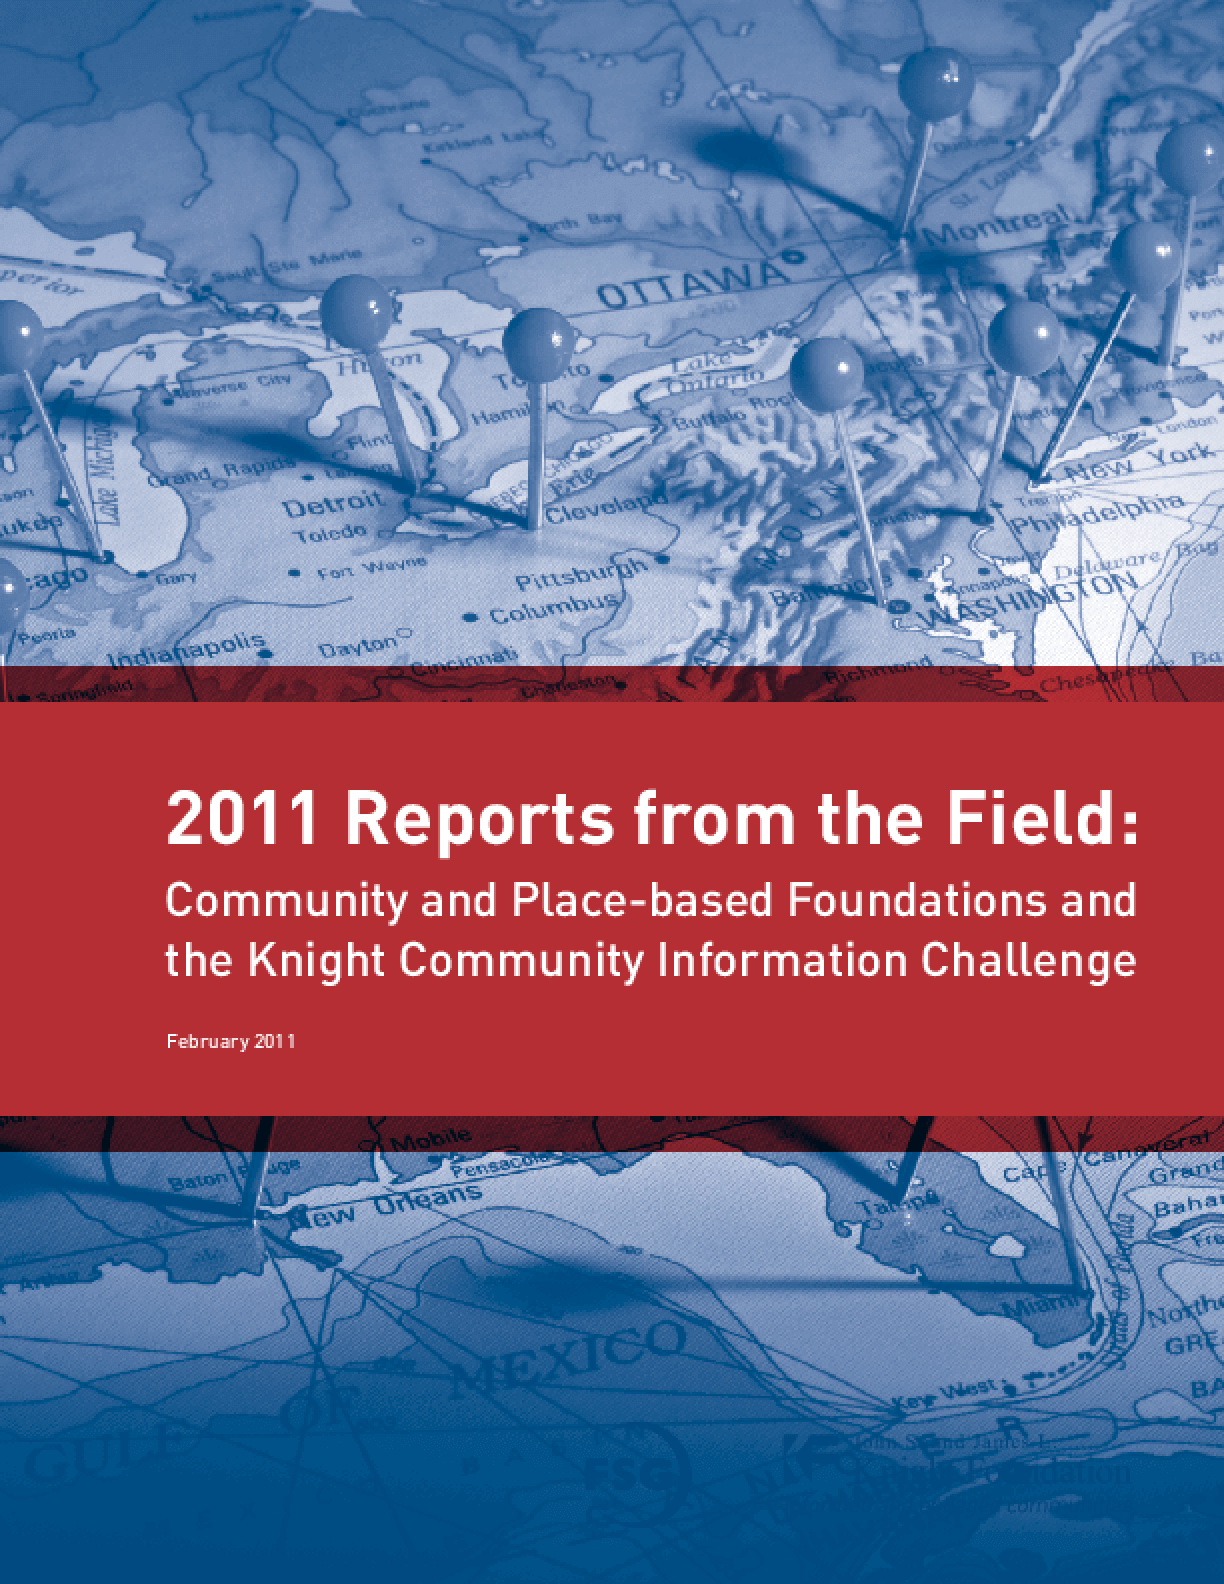 2011 Reports From the Field: Community and Place-Based Foundations and the Knight Community Information Challenge